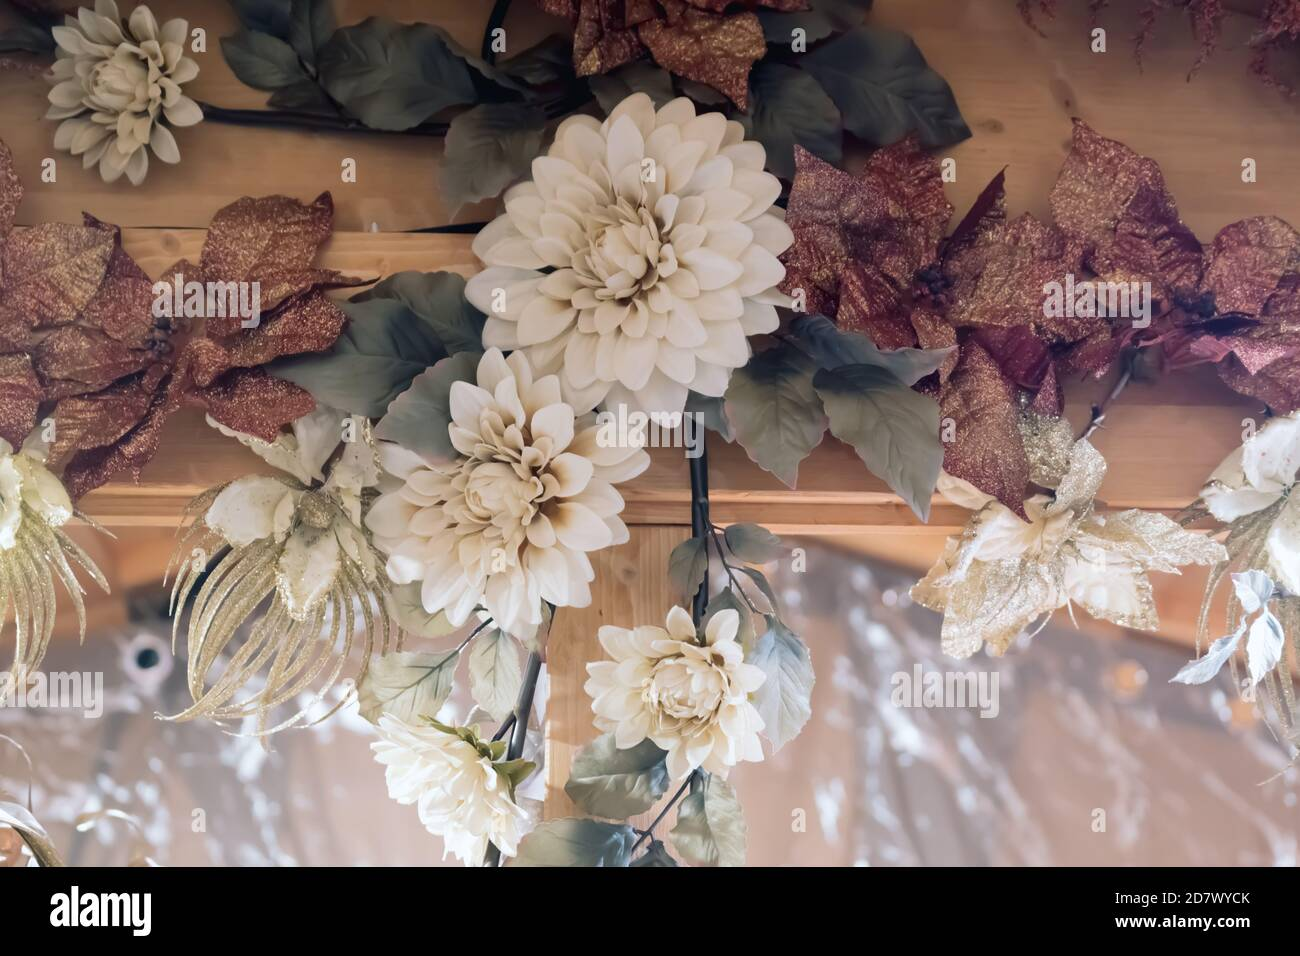 Christmas Decorations Artificial Flowers On Blurred Background Selective Focus Stock Photo Alamy